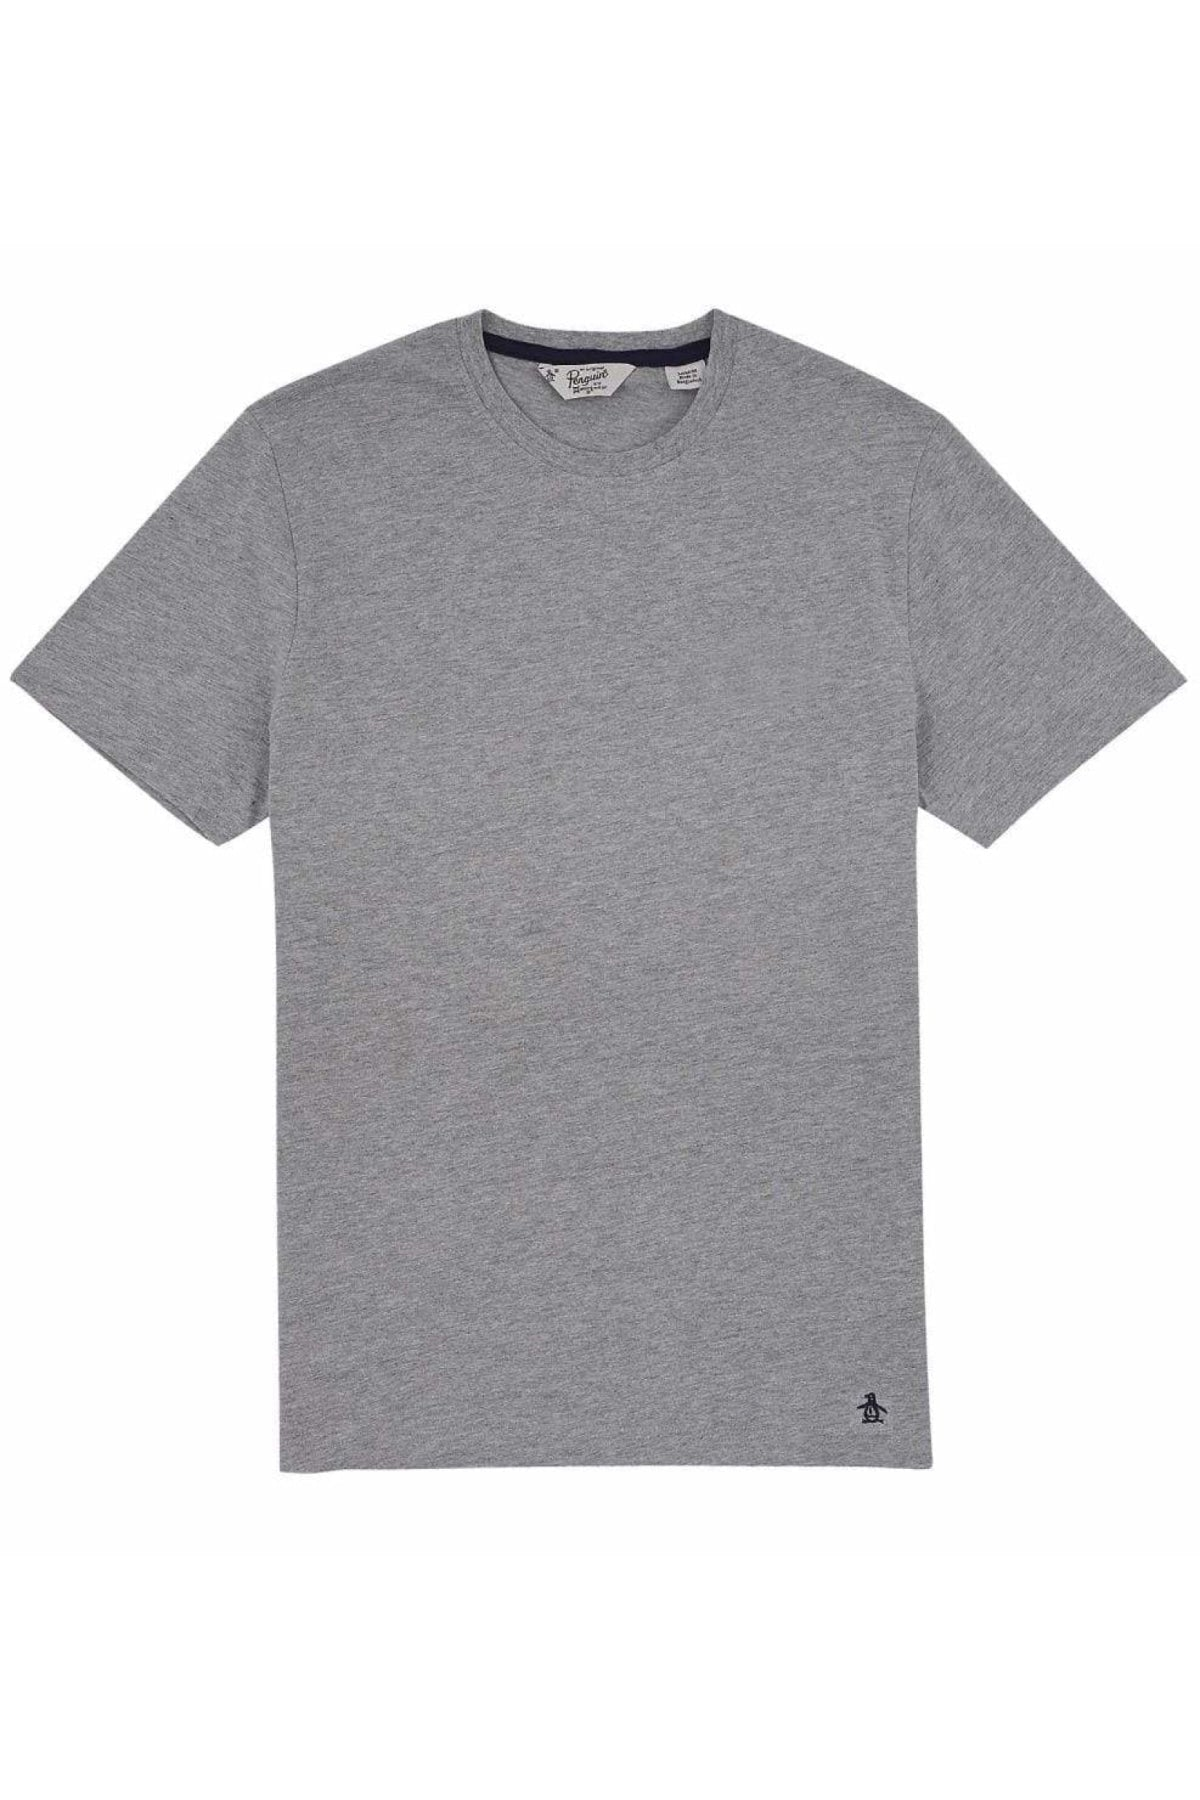 Penguin Original Pinpoint T-Shirts | L / Grey Secret Label